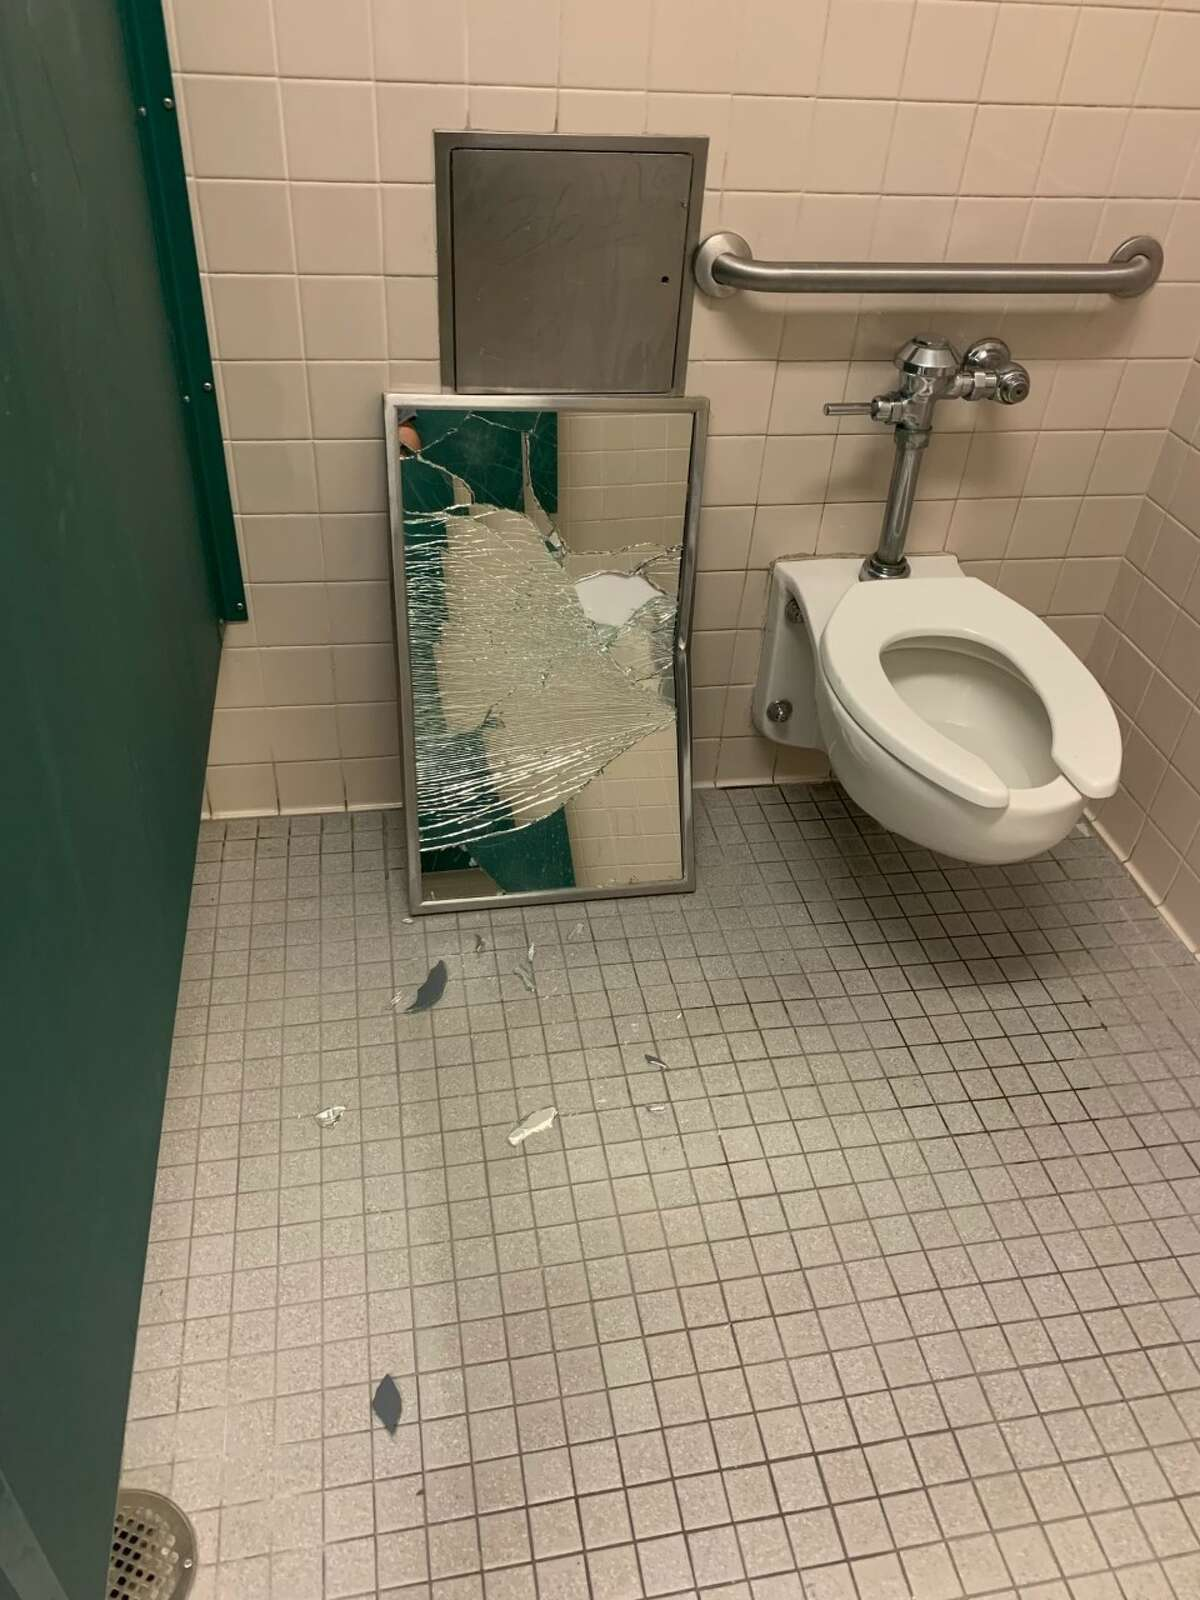 Pictures from NEISD show just some of the vandalism discovered on their campuses.